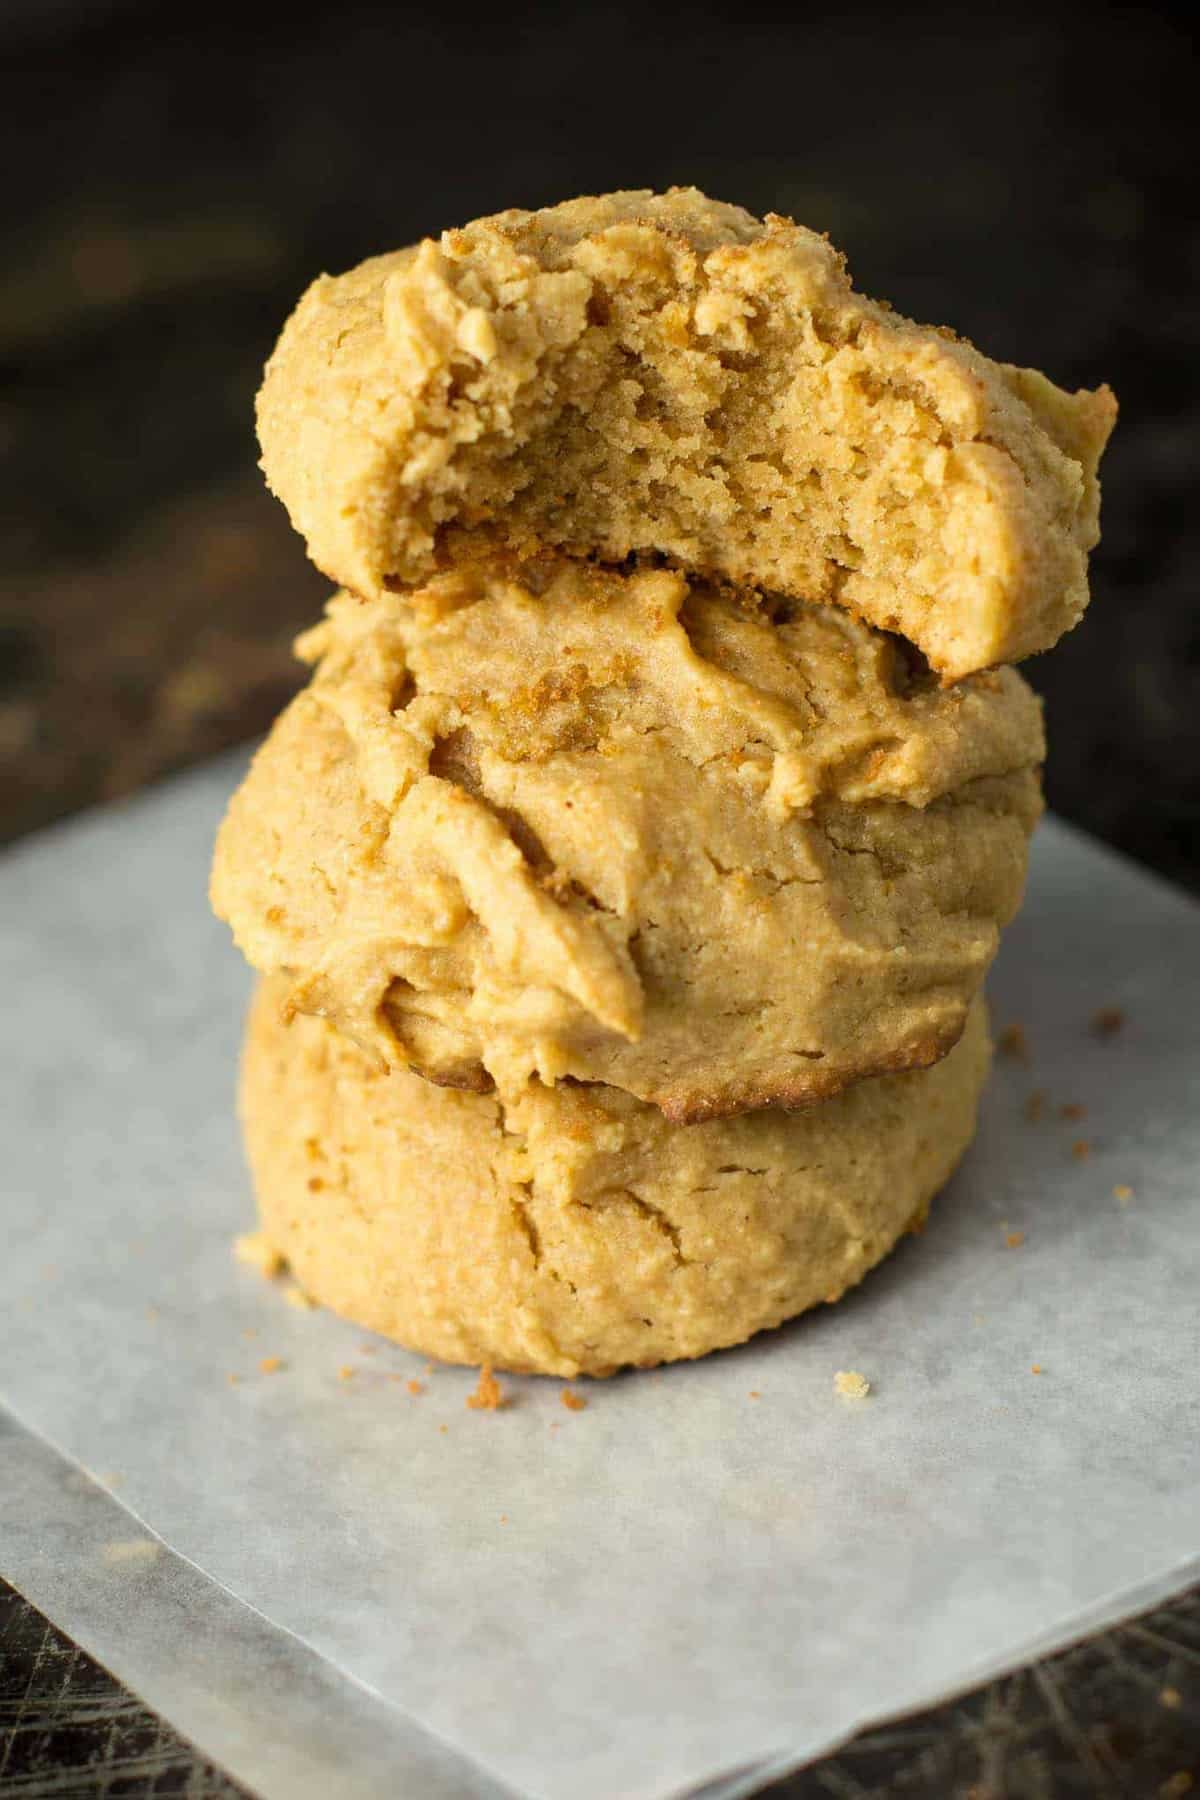 Perfect fluffy peanut butter cookies are an easy gluten free and wholesome dessert. Made with coconut flour, naturally sweetened and made in just one bowl.